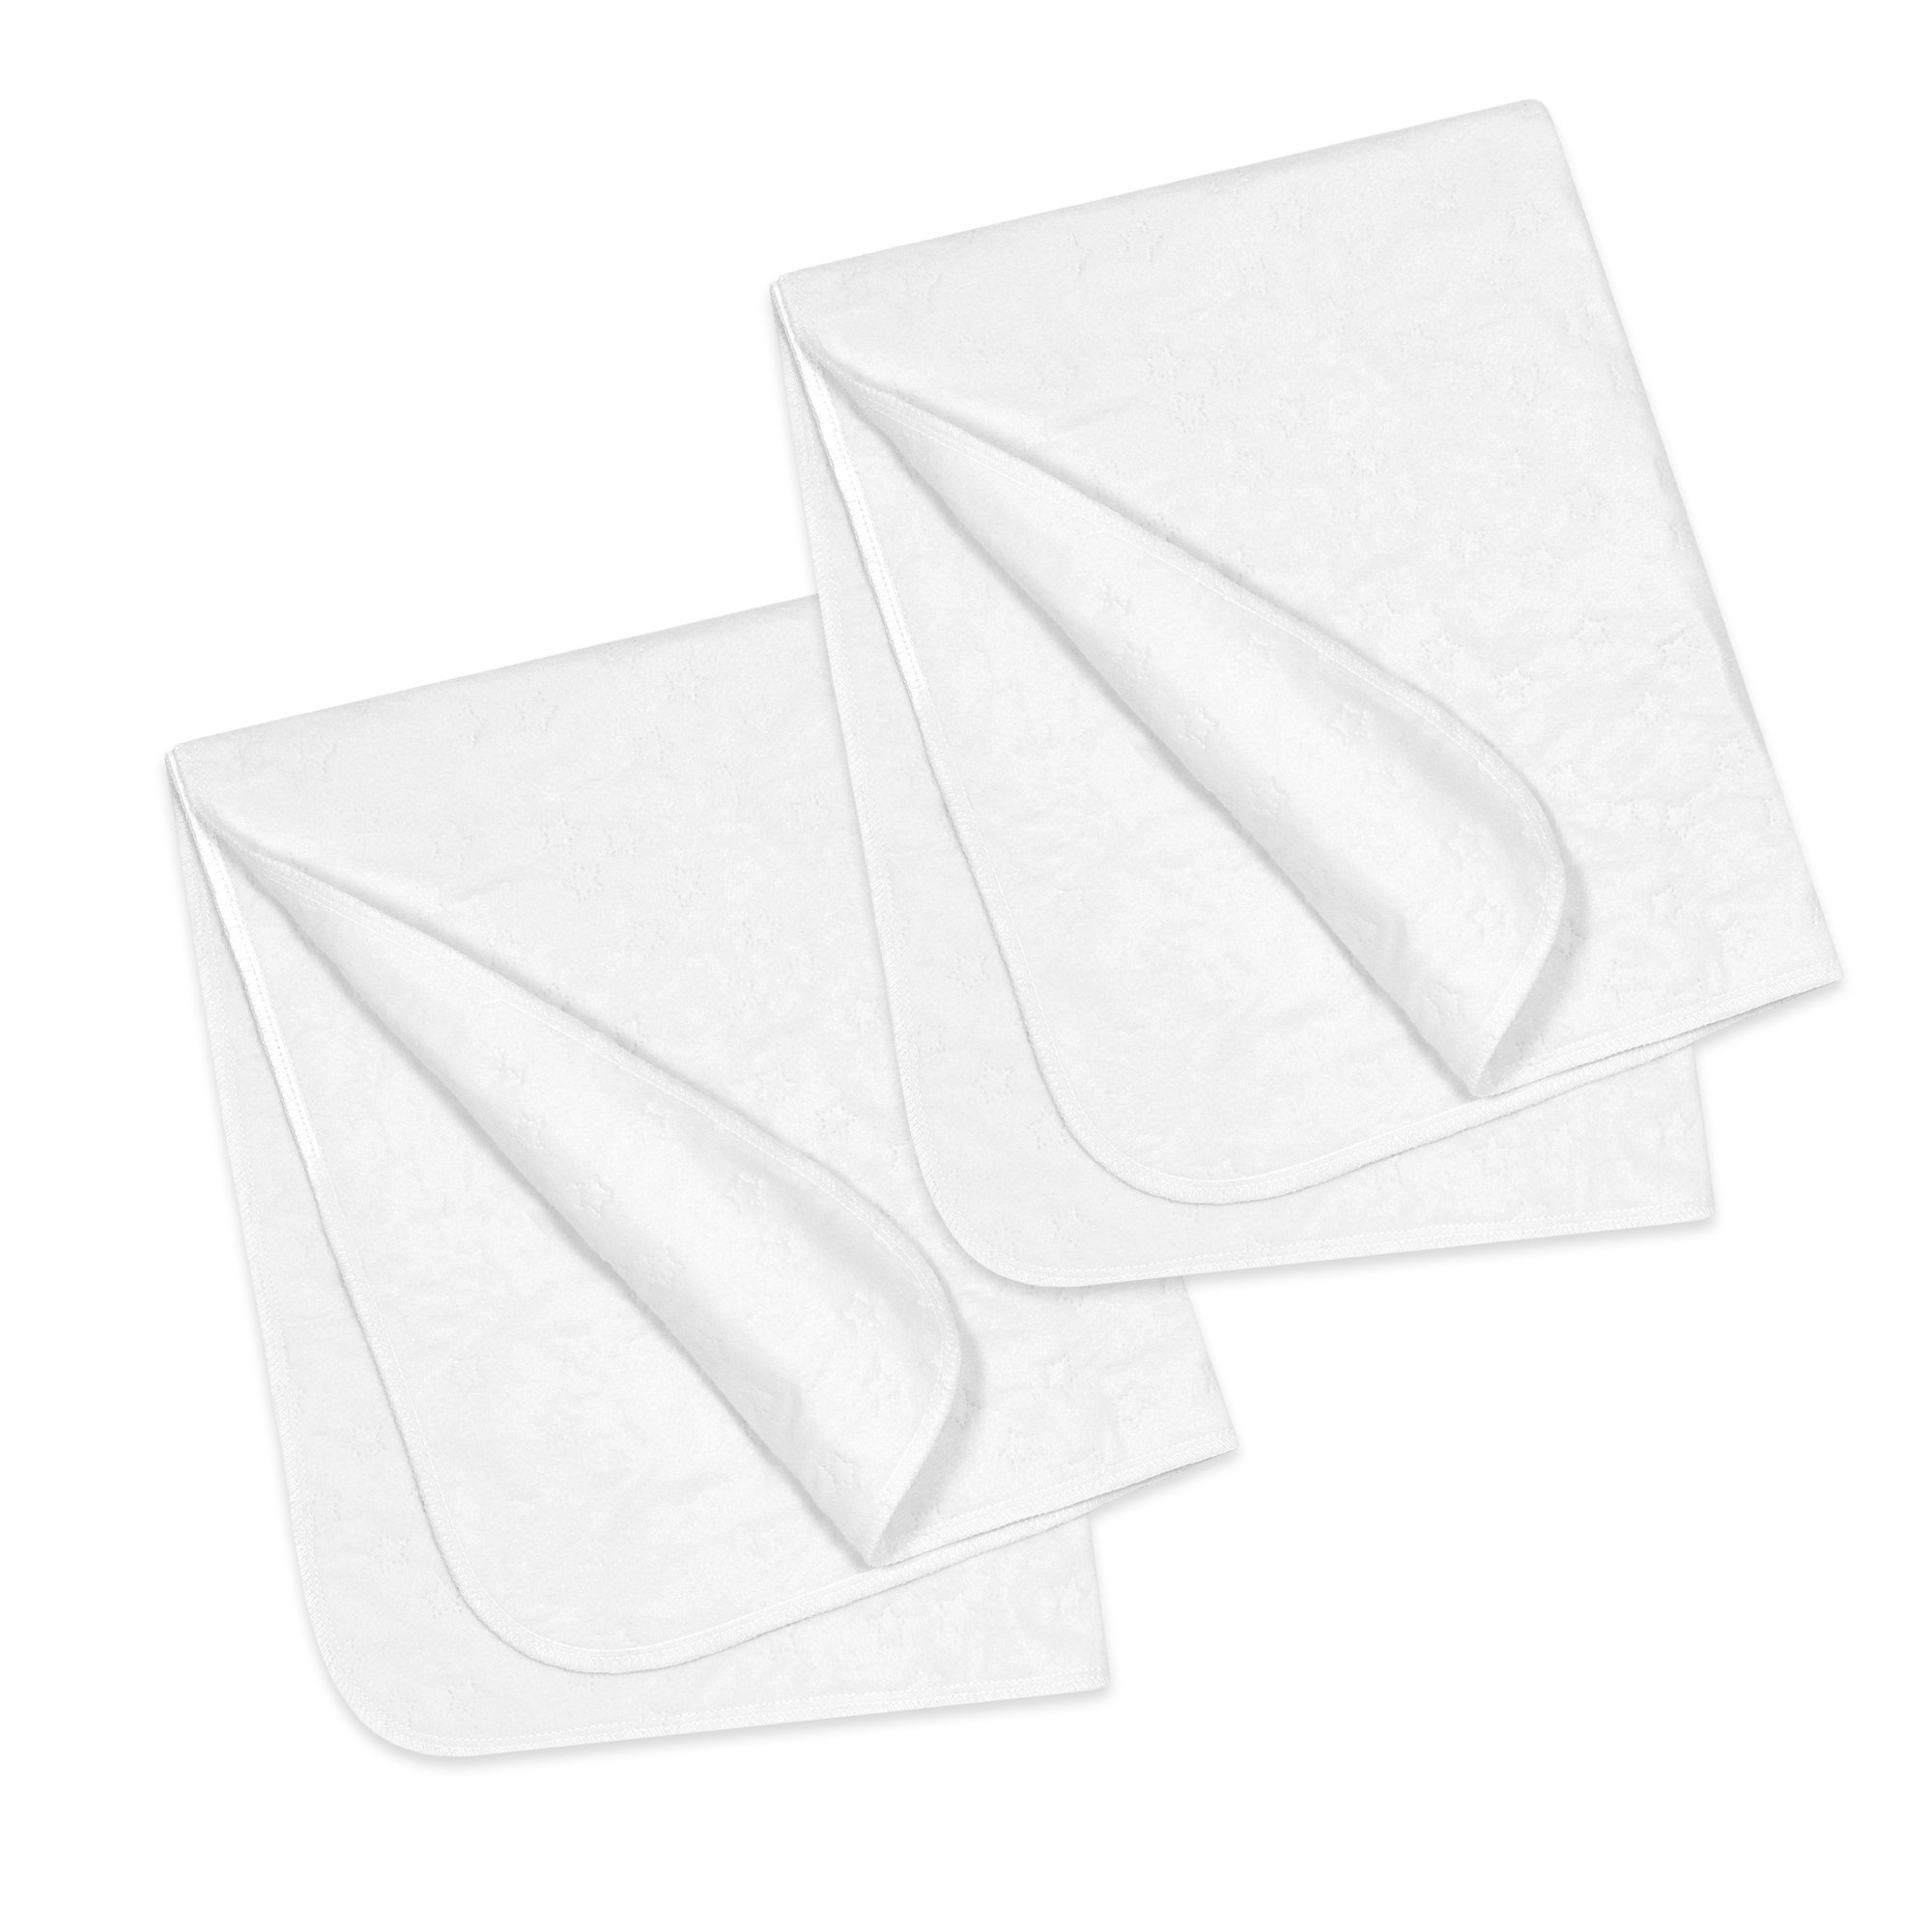 Gerber 2 Piece Water Resistant Protector Pads, White, 18'' x 27''